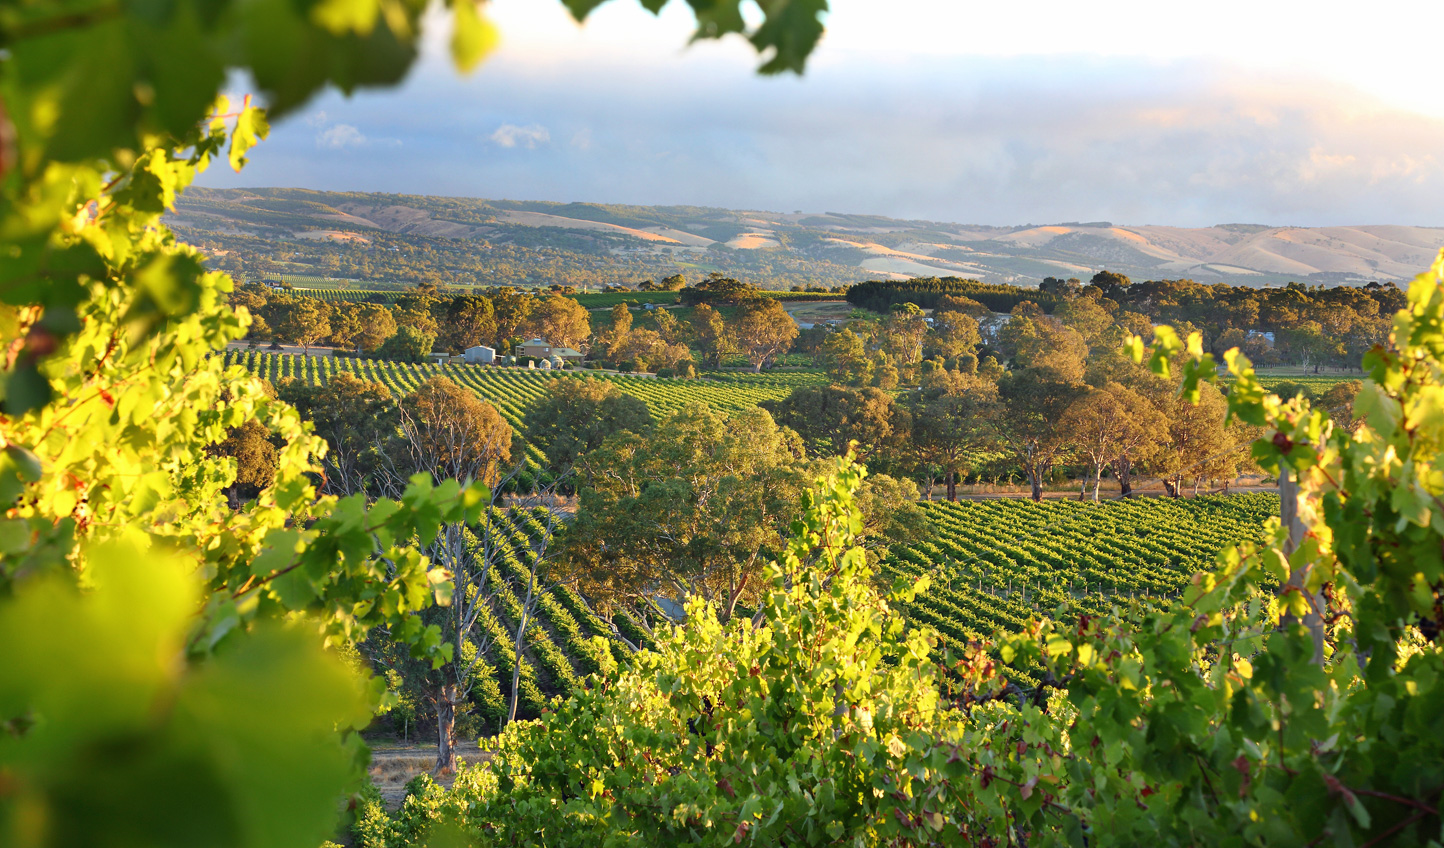 Spend a day tasting your way through the McLaren Vale in the company of a specialist wine guide